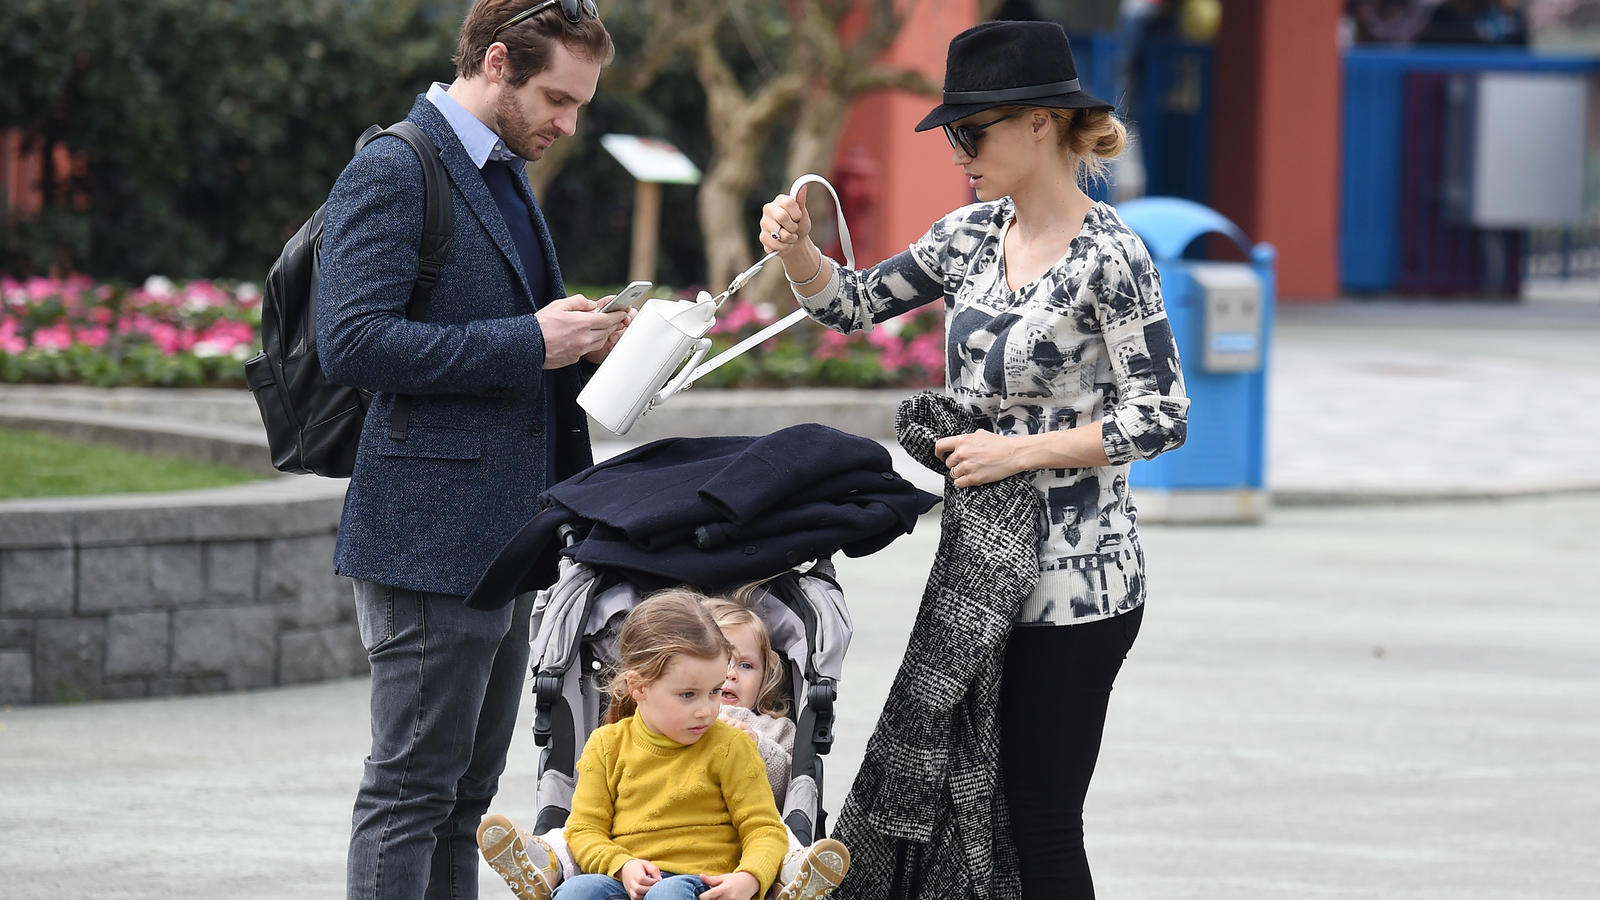 Michelle Hunziker and her family are seen at Leolandia theme park in Bergamo, Italy.